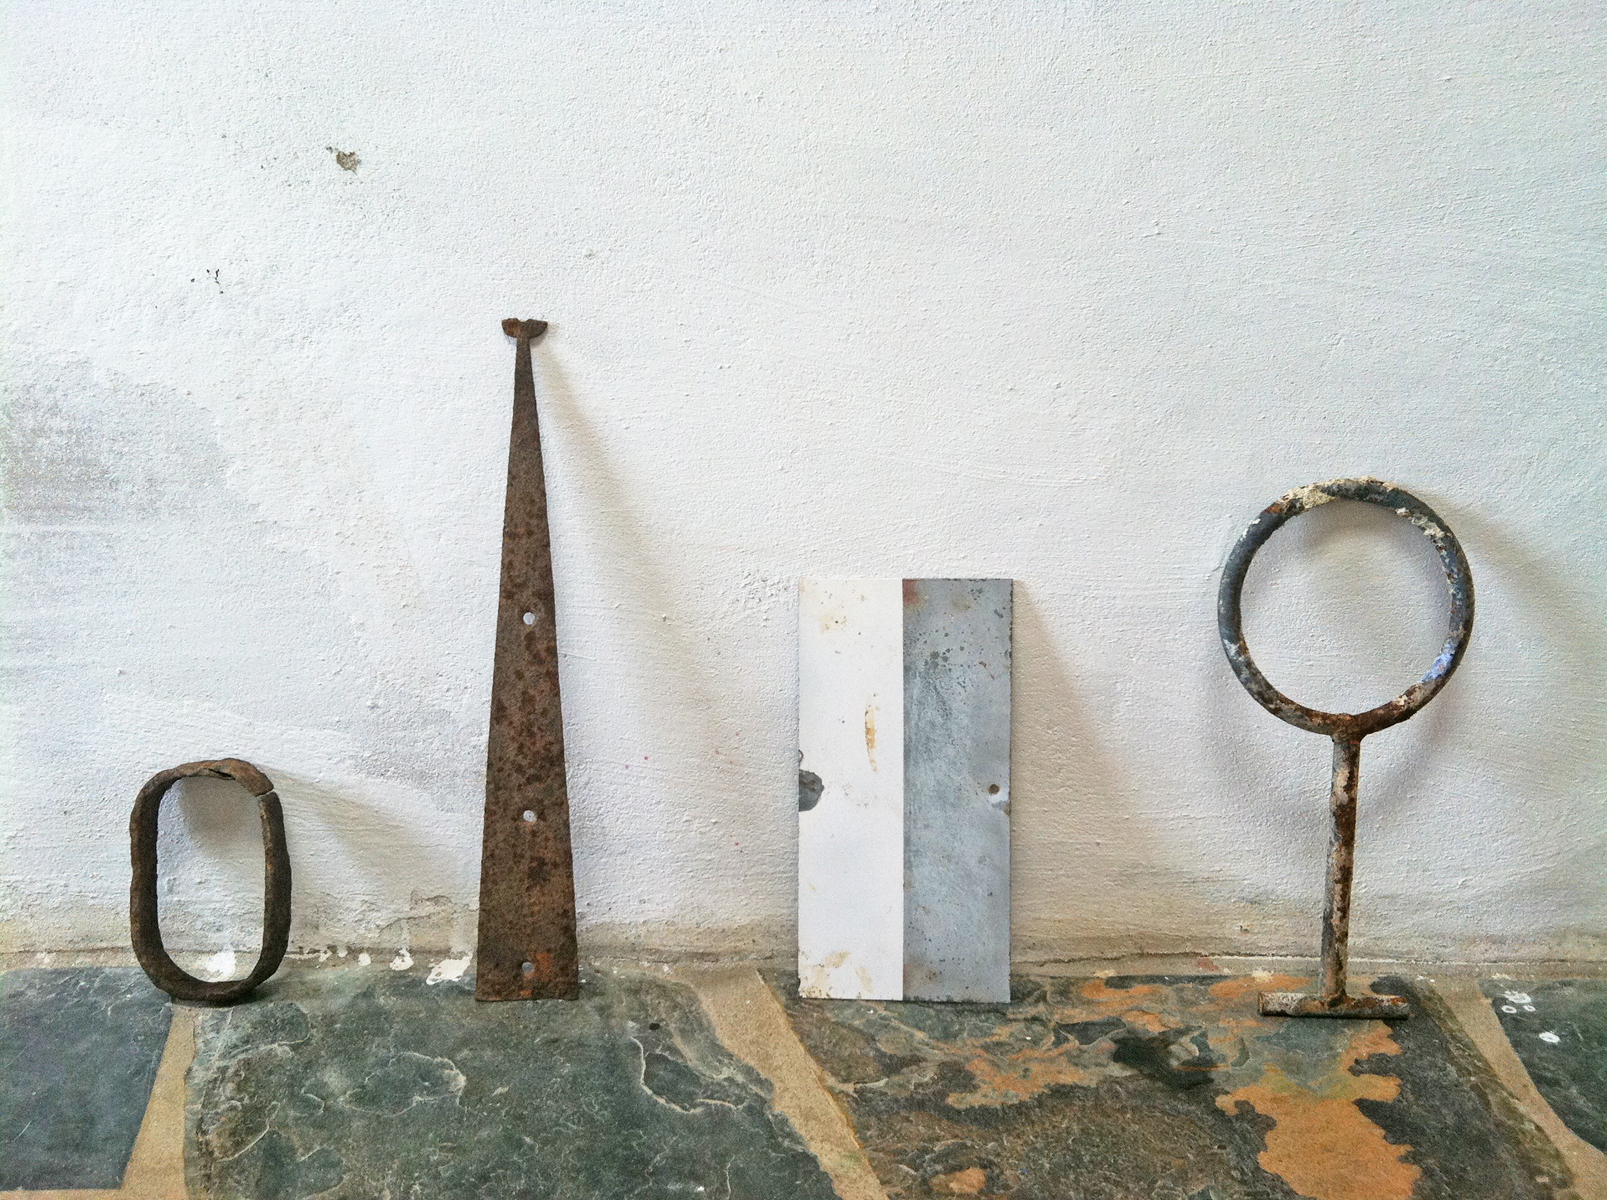 Four rustic metal objects sit on a flagstone floor and lean against a white wall.